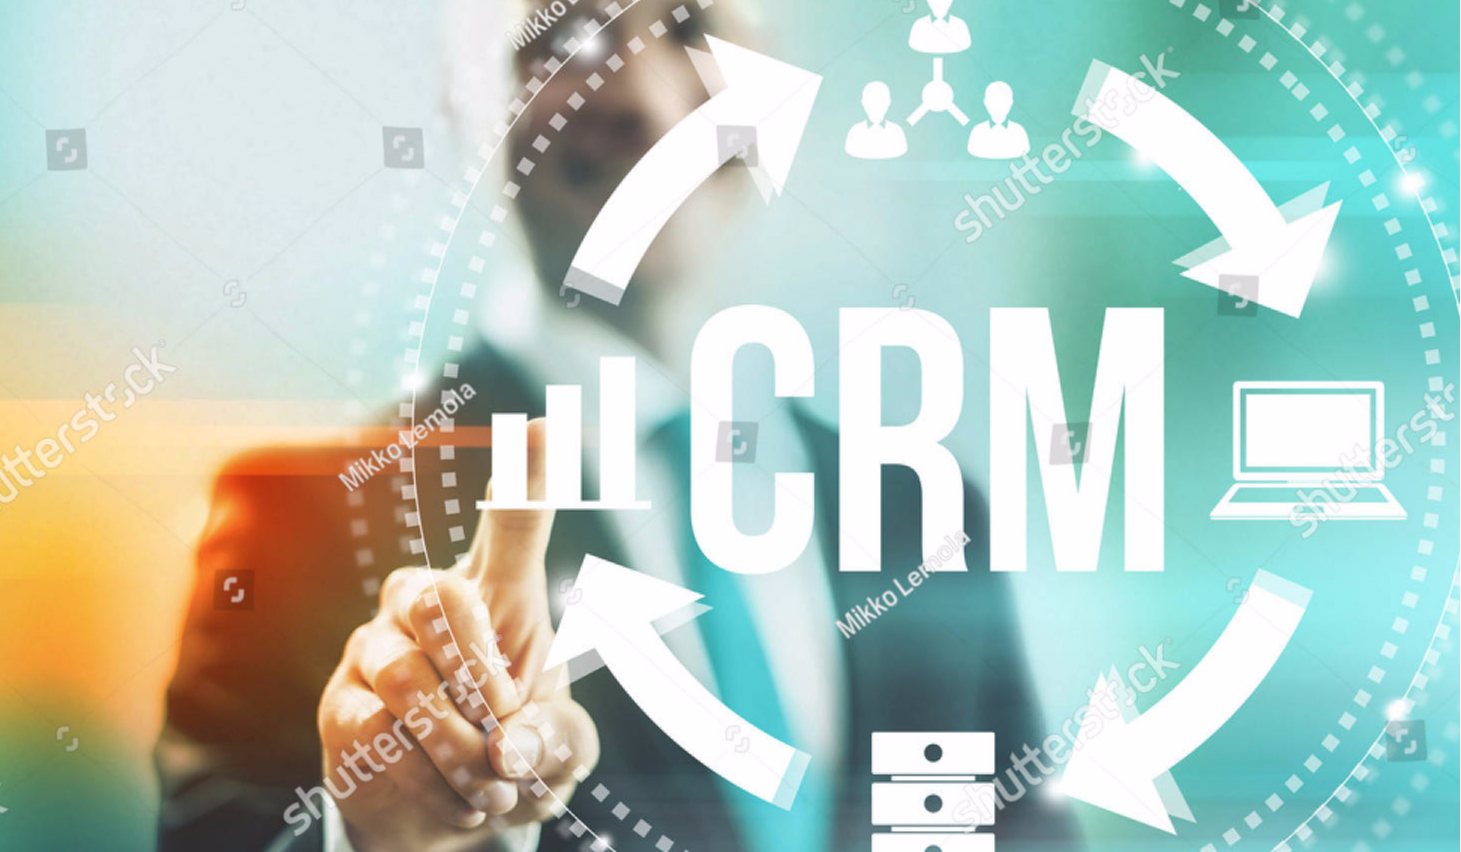 customer-relationship-management-concept-man-selecting-crm-159960029-1500x11013